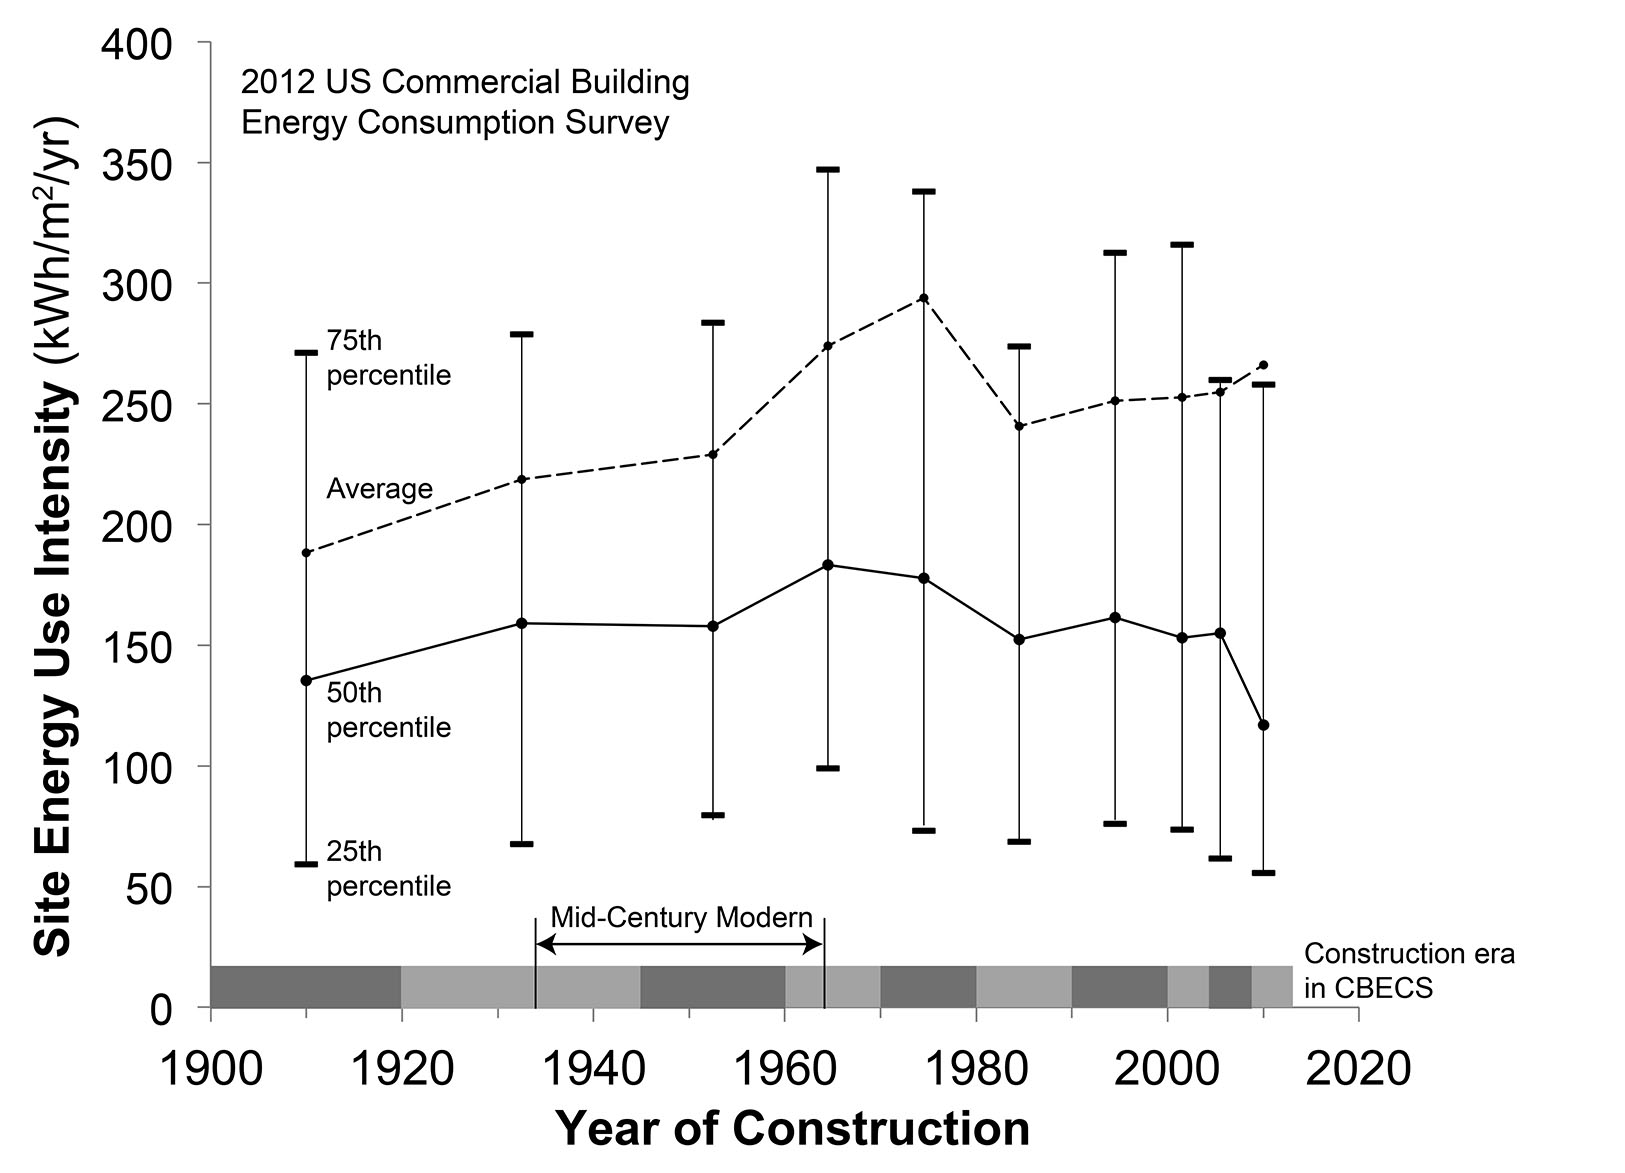 Figure      SEQ Figure \* ARABIC    1      :  Site Energy Use Intensity of US commercial buildings surveyed in 2012, sorted by era of construction. The spread of EUI among buildings within each era of construction is indicated by 25th, 50th, and 75th percentile markers. Within each construction era, EUI is not distributed symmetrically; high-EUI buildings pull the average EUI well above the median (50th percentile). Buildings constructed in the Mid-Century Modern era exhibit EUI values that are higher than those built before 1920, but lower than most buildings constructed later. The average EUI of all buildings in the dataset (all ages) is 252 kWh/m2/yr. (CBECS 2012).